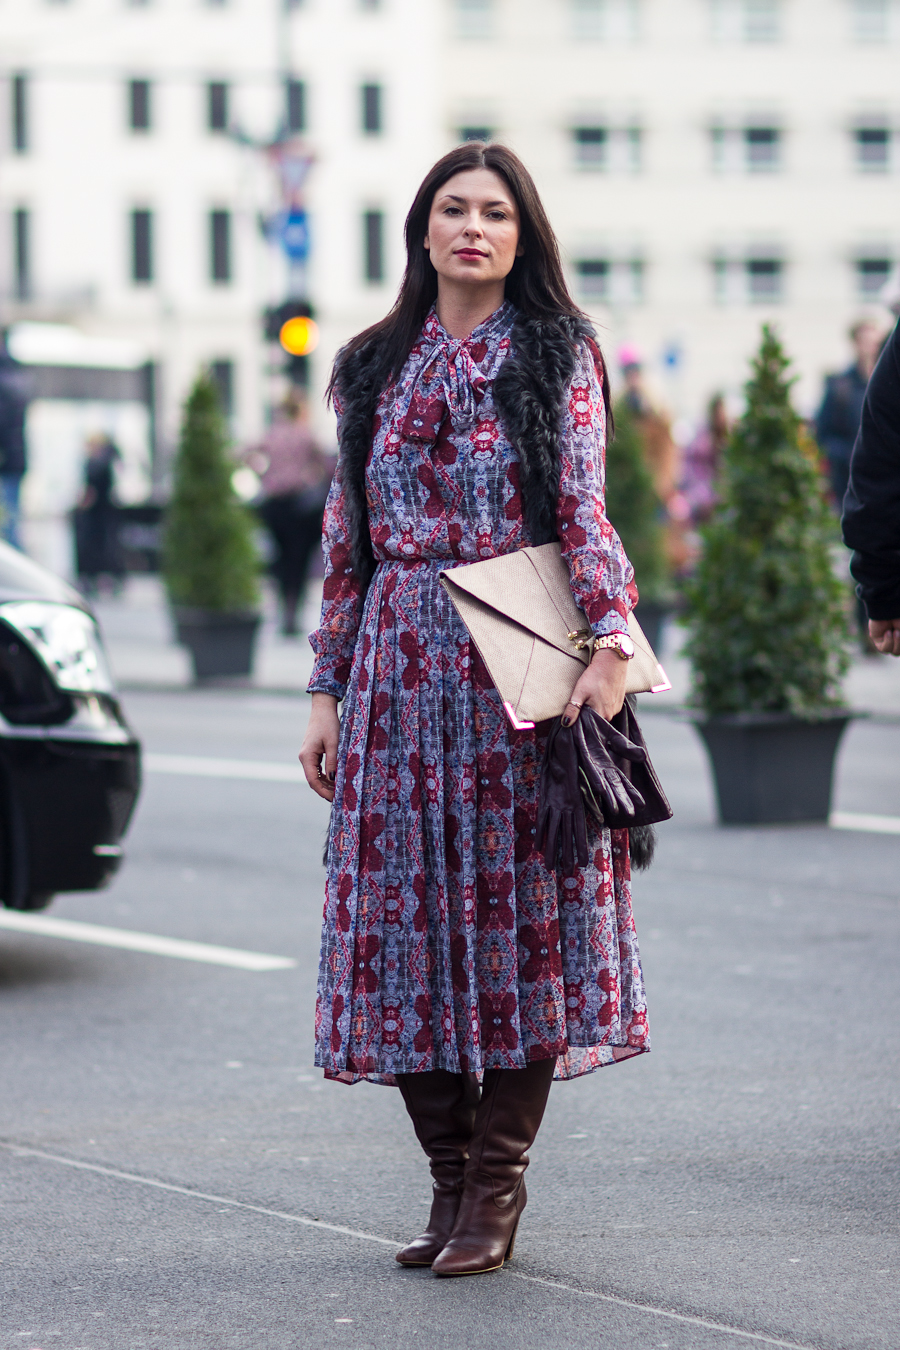 street-style-fashion-blog-innsbruck-berlin-fashion-week-julia-gelau-2